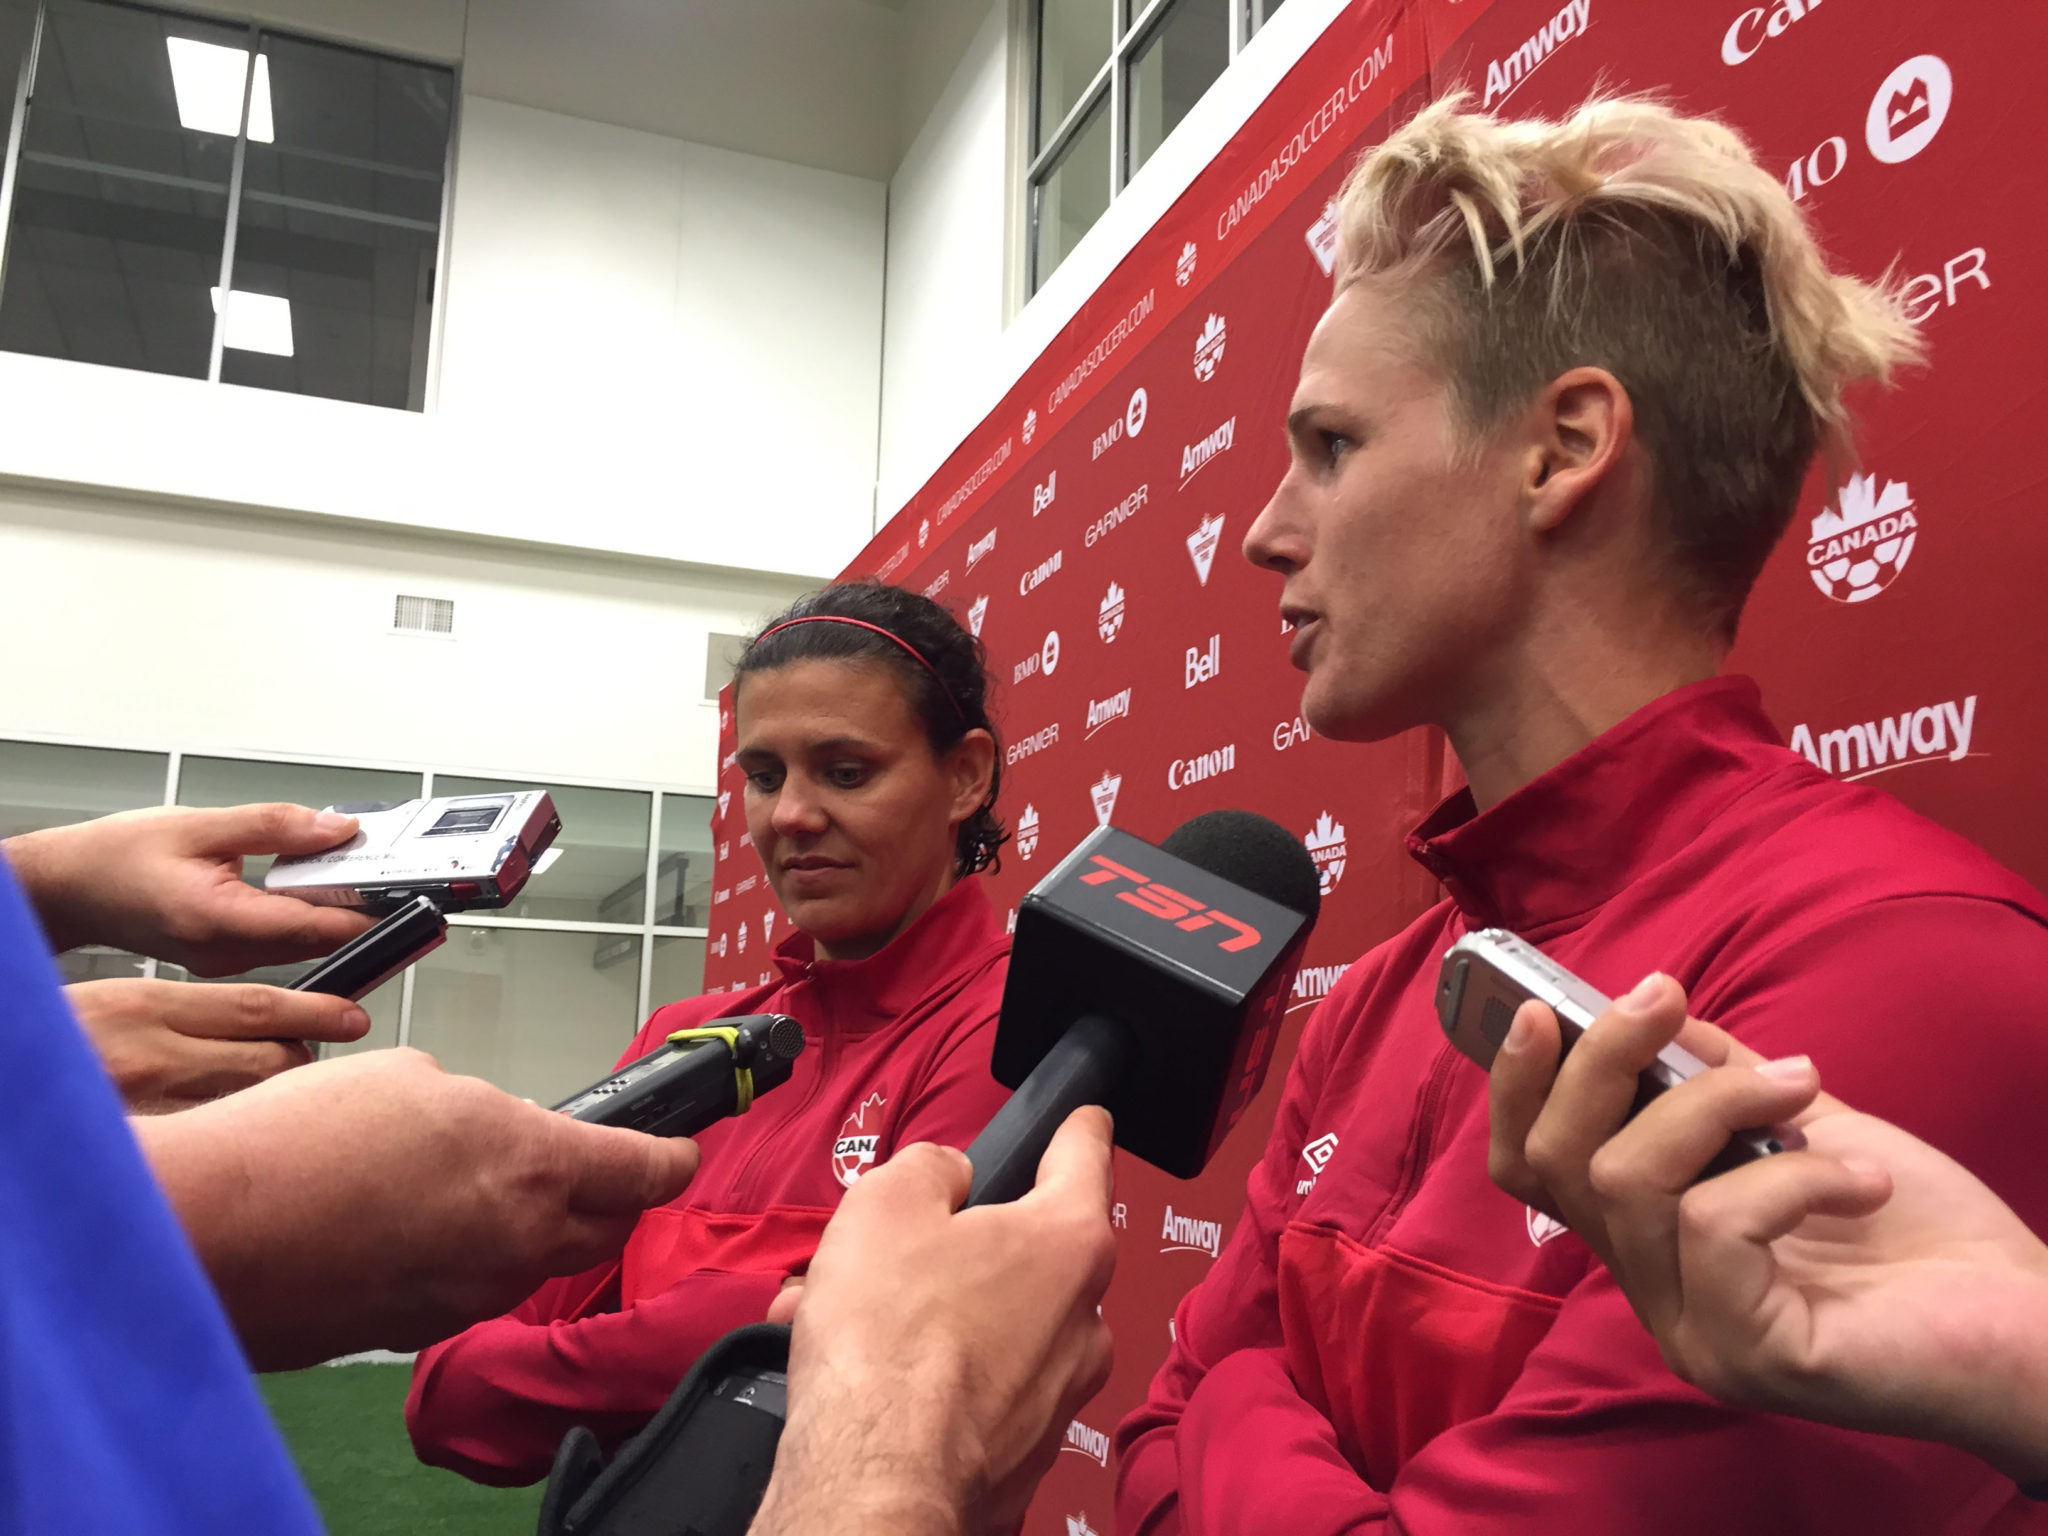 Sophie Schmidt (right) scored to lift Canada past England in a friendly. (Photo Copyright Harjeet Johal for The Equalizer)